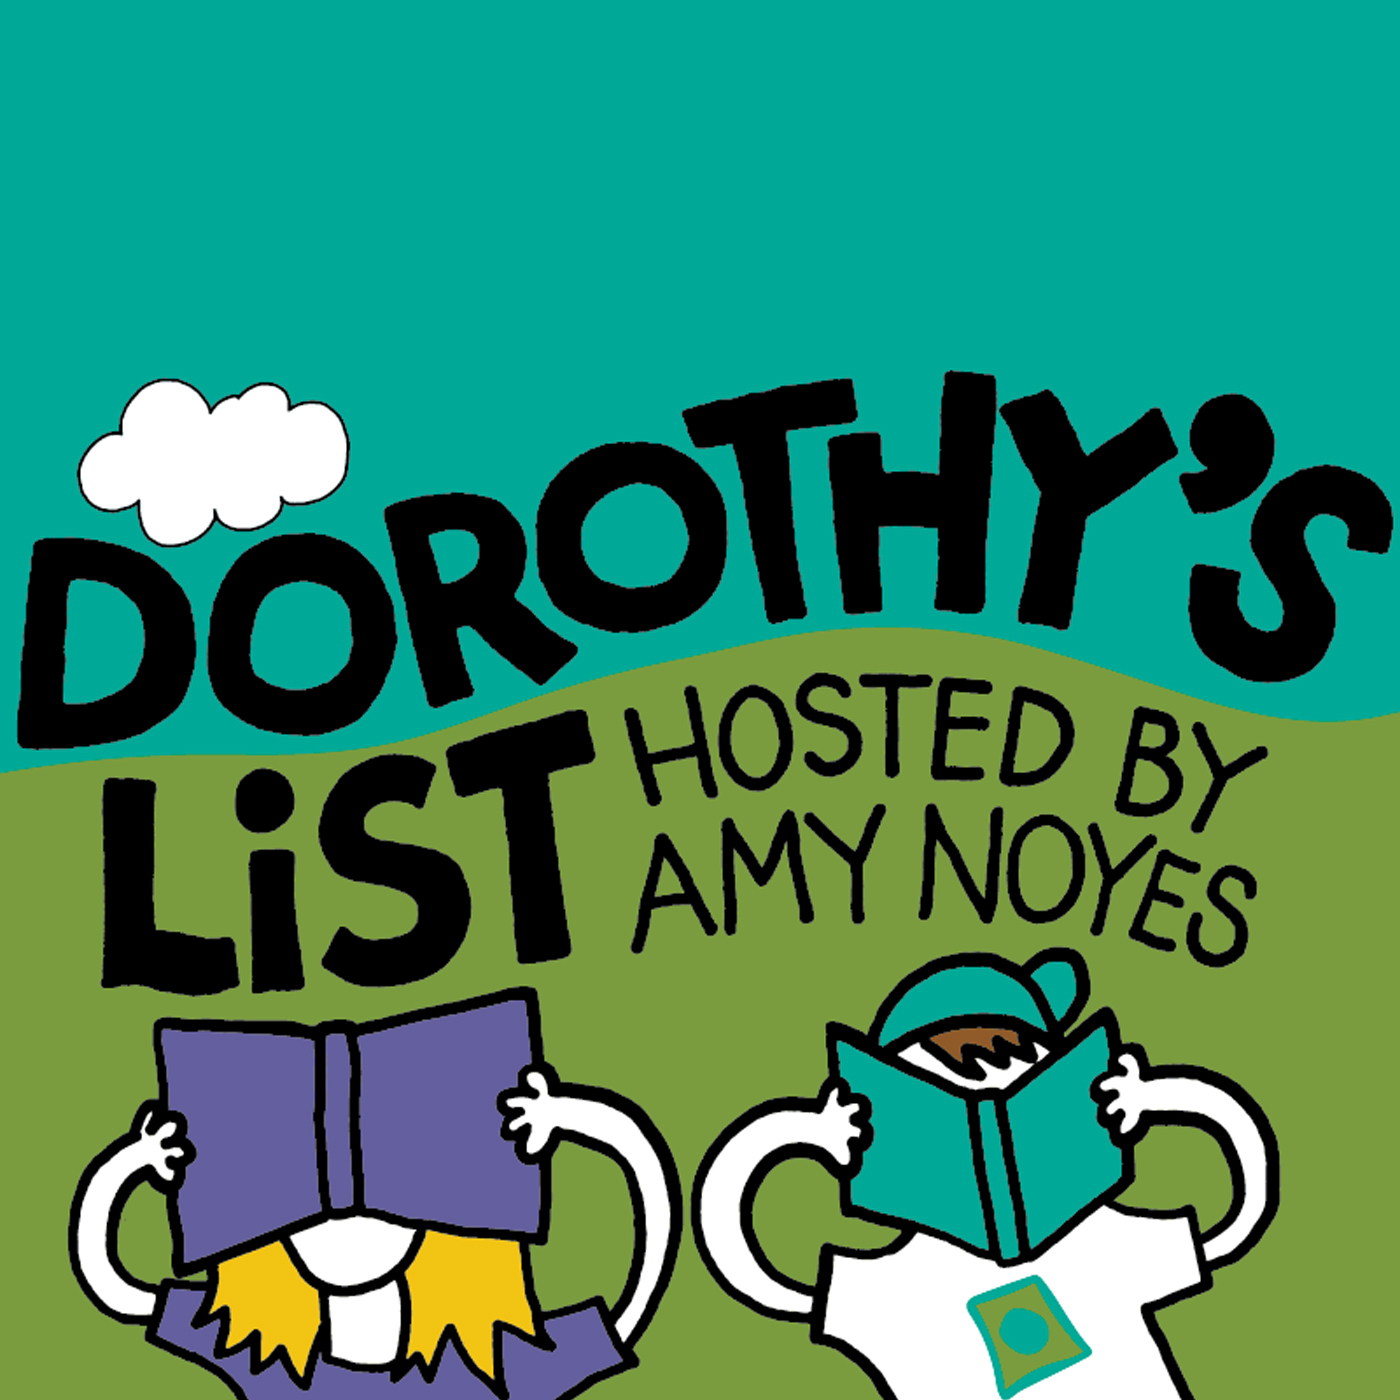 Dorothy's List from VPR